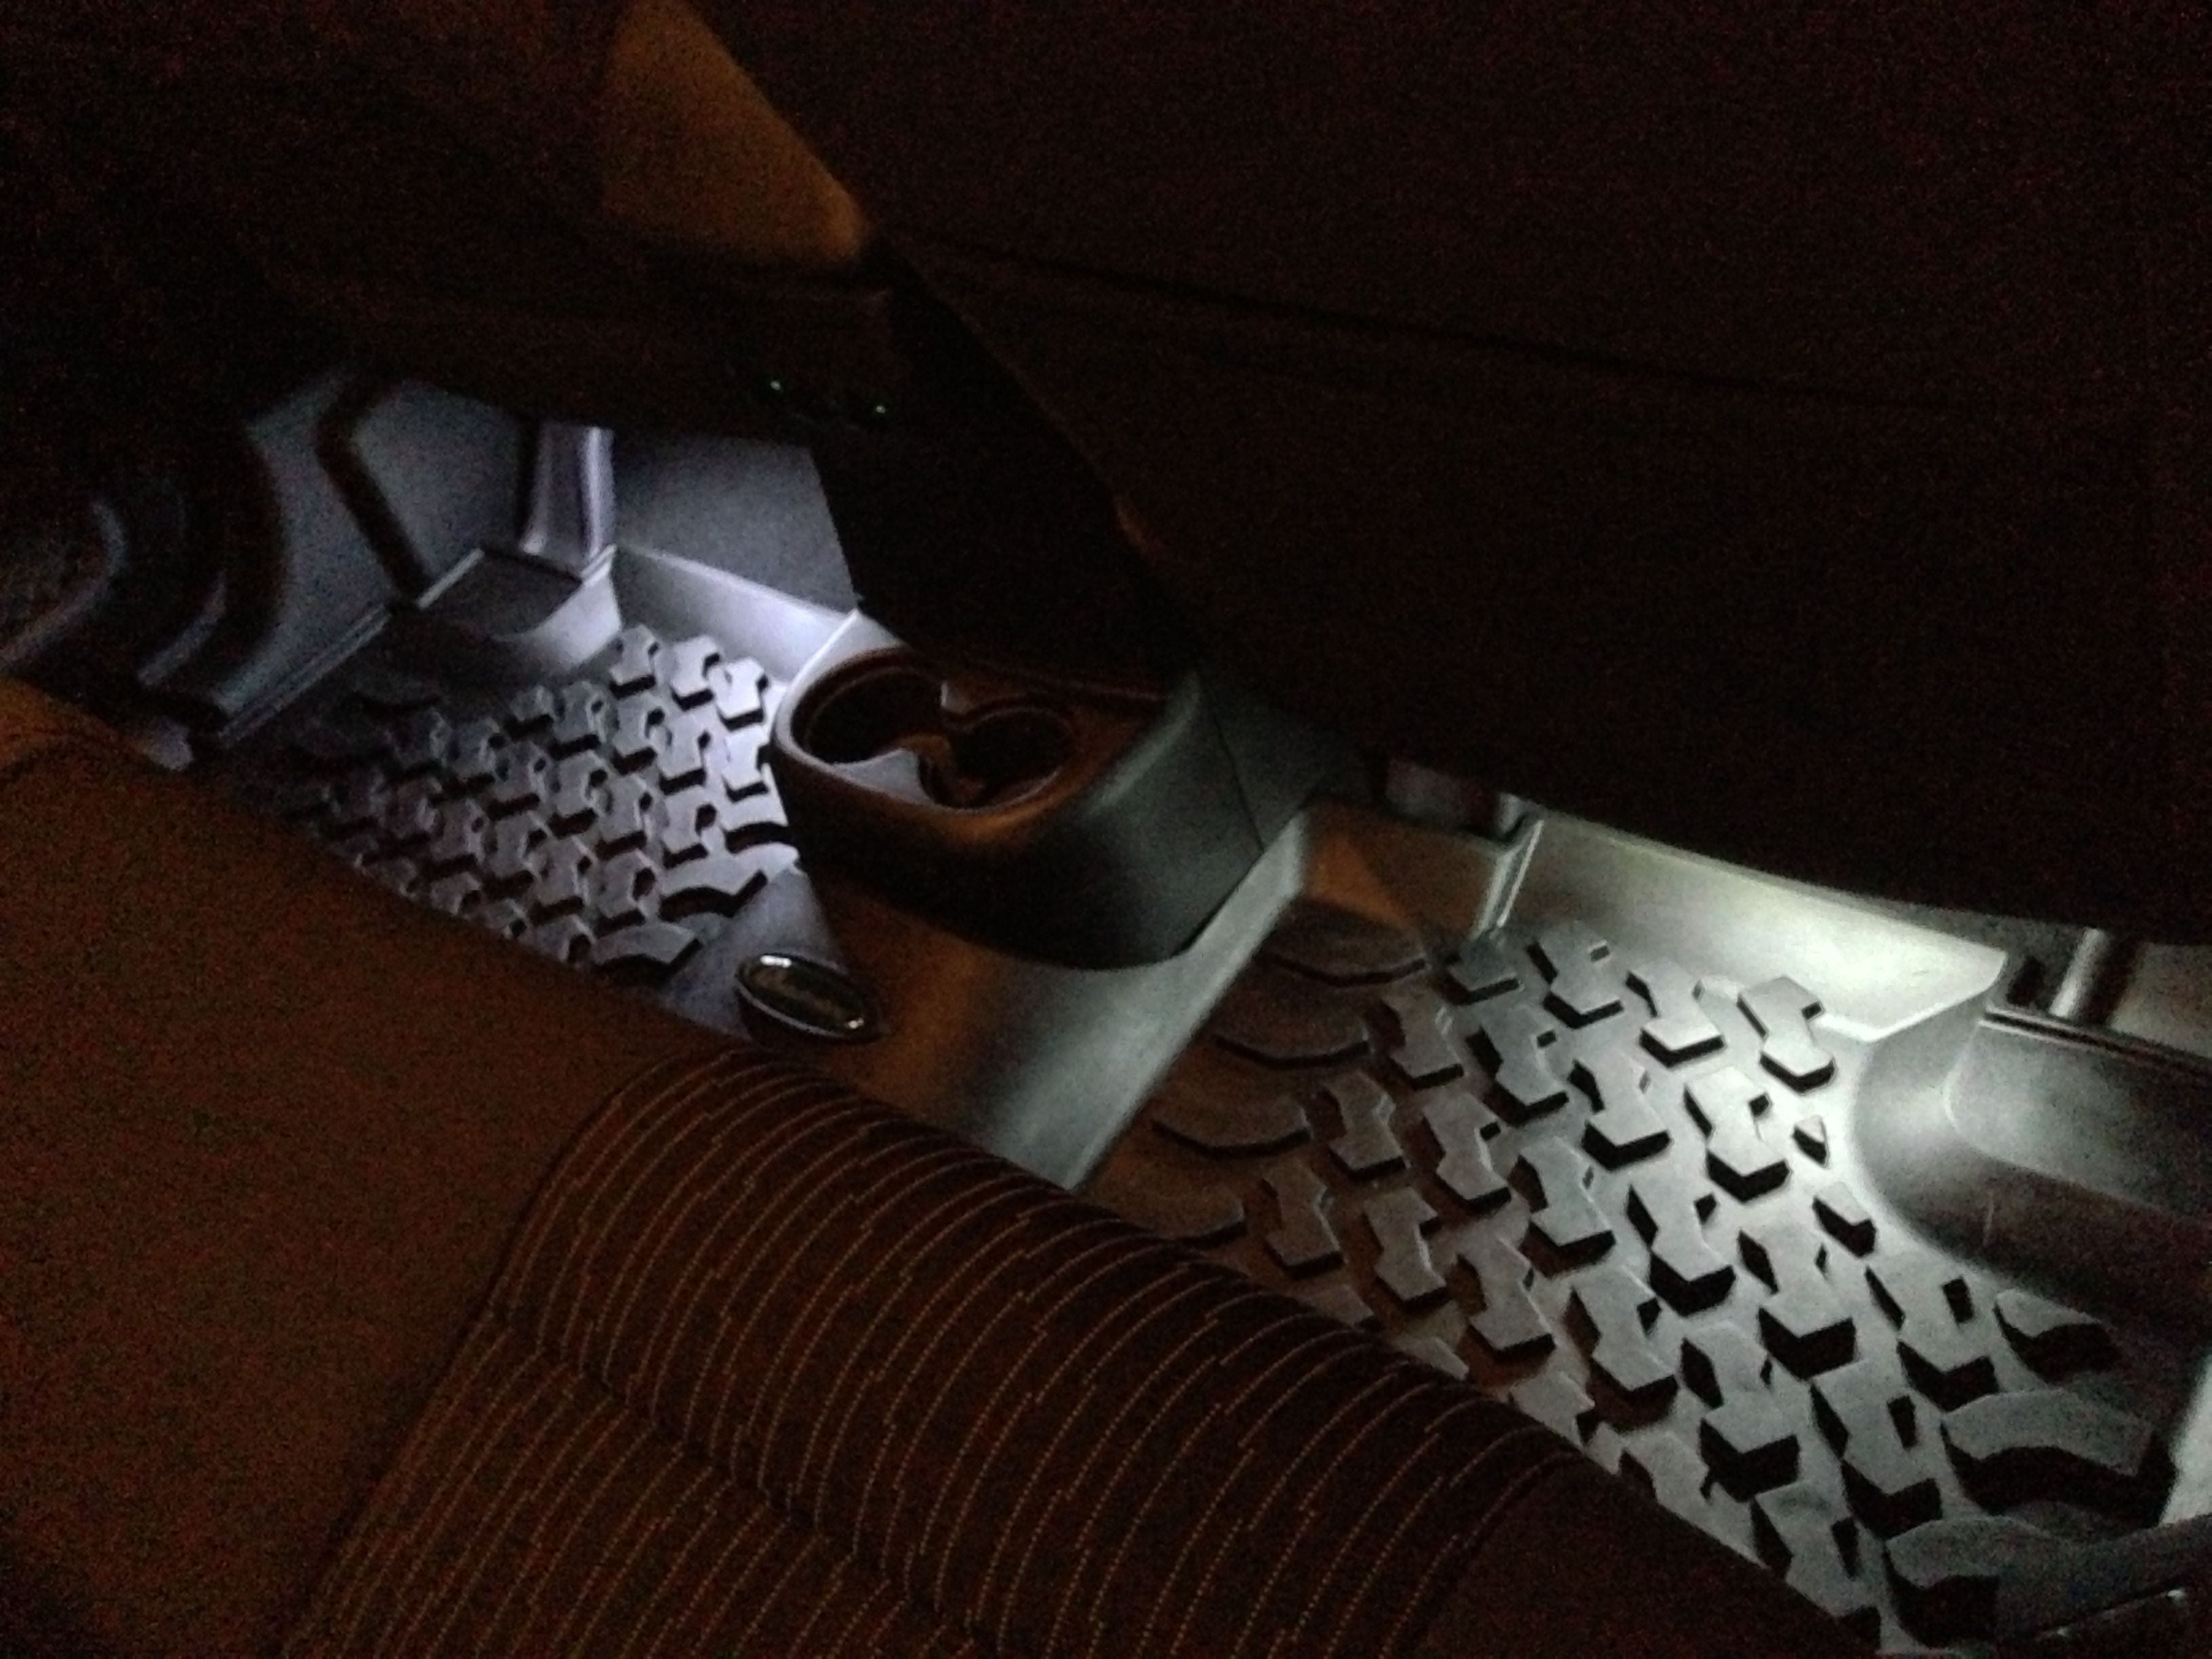 Led Floor Lights For Your Jeep Jk Jeeps Are Awesome But Lack Some Of The Simple Necessities Of Regular Cars And